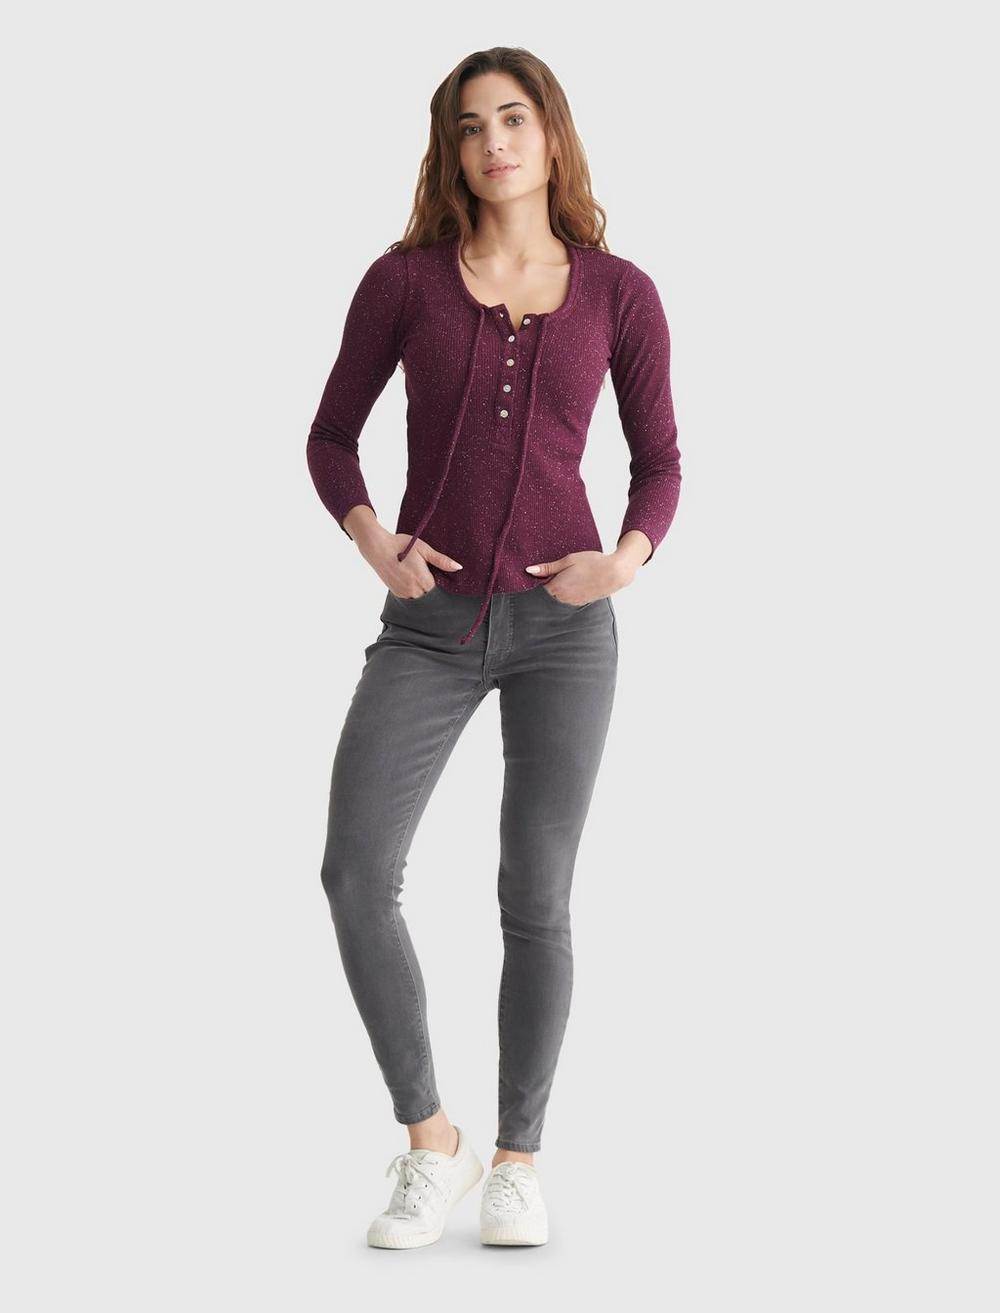 KNIT TOP, image 2